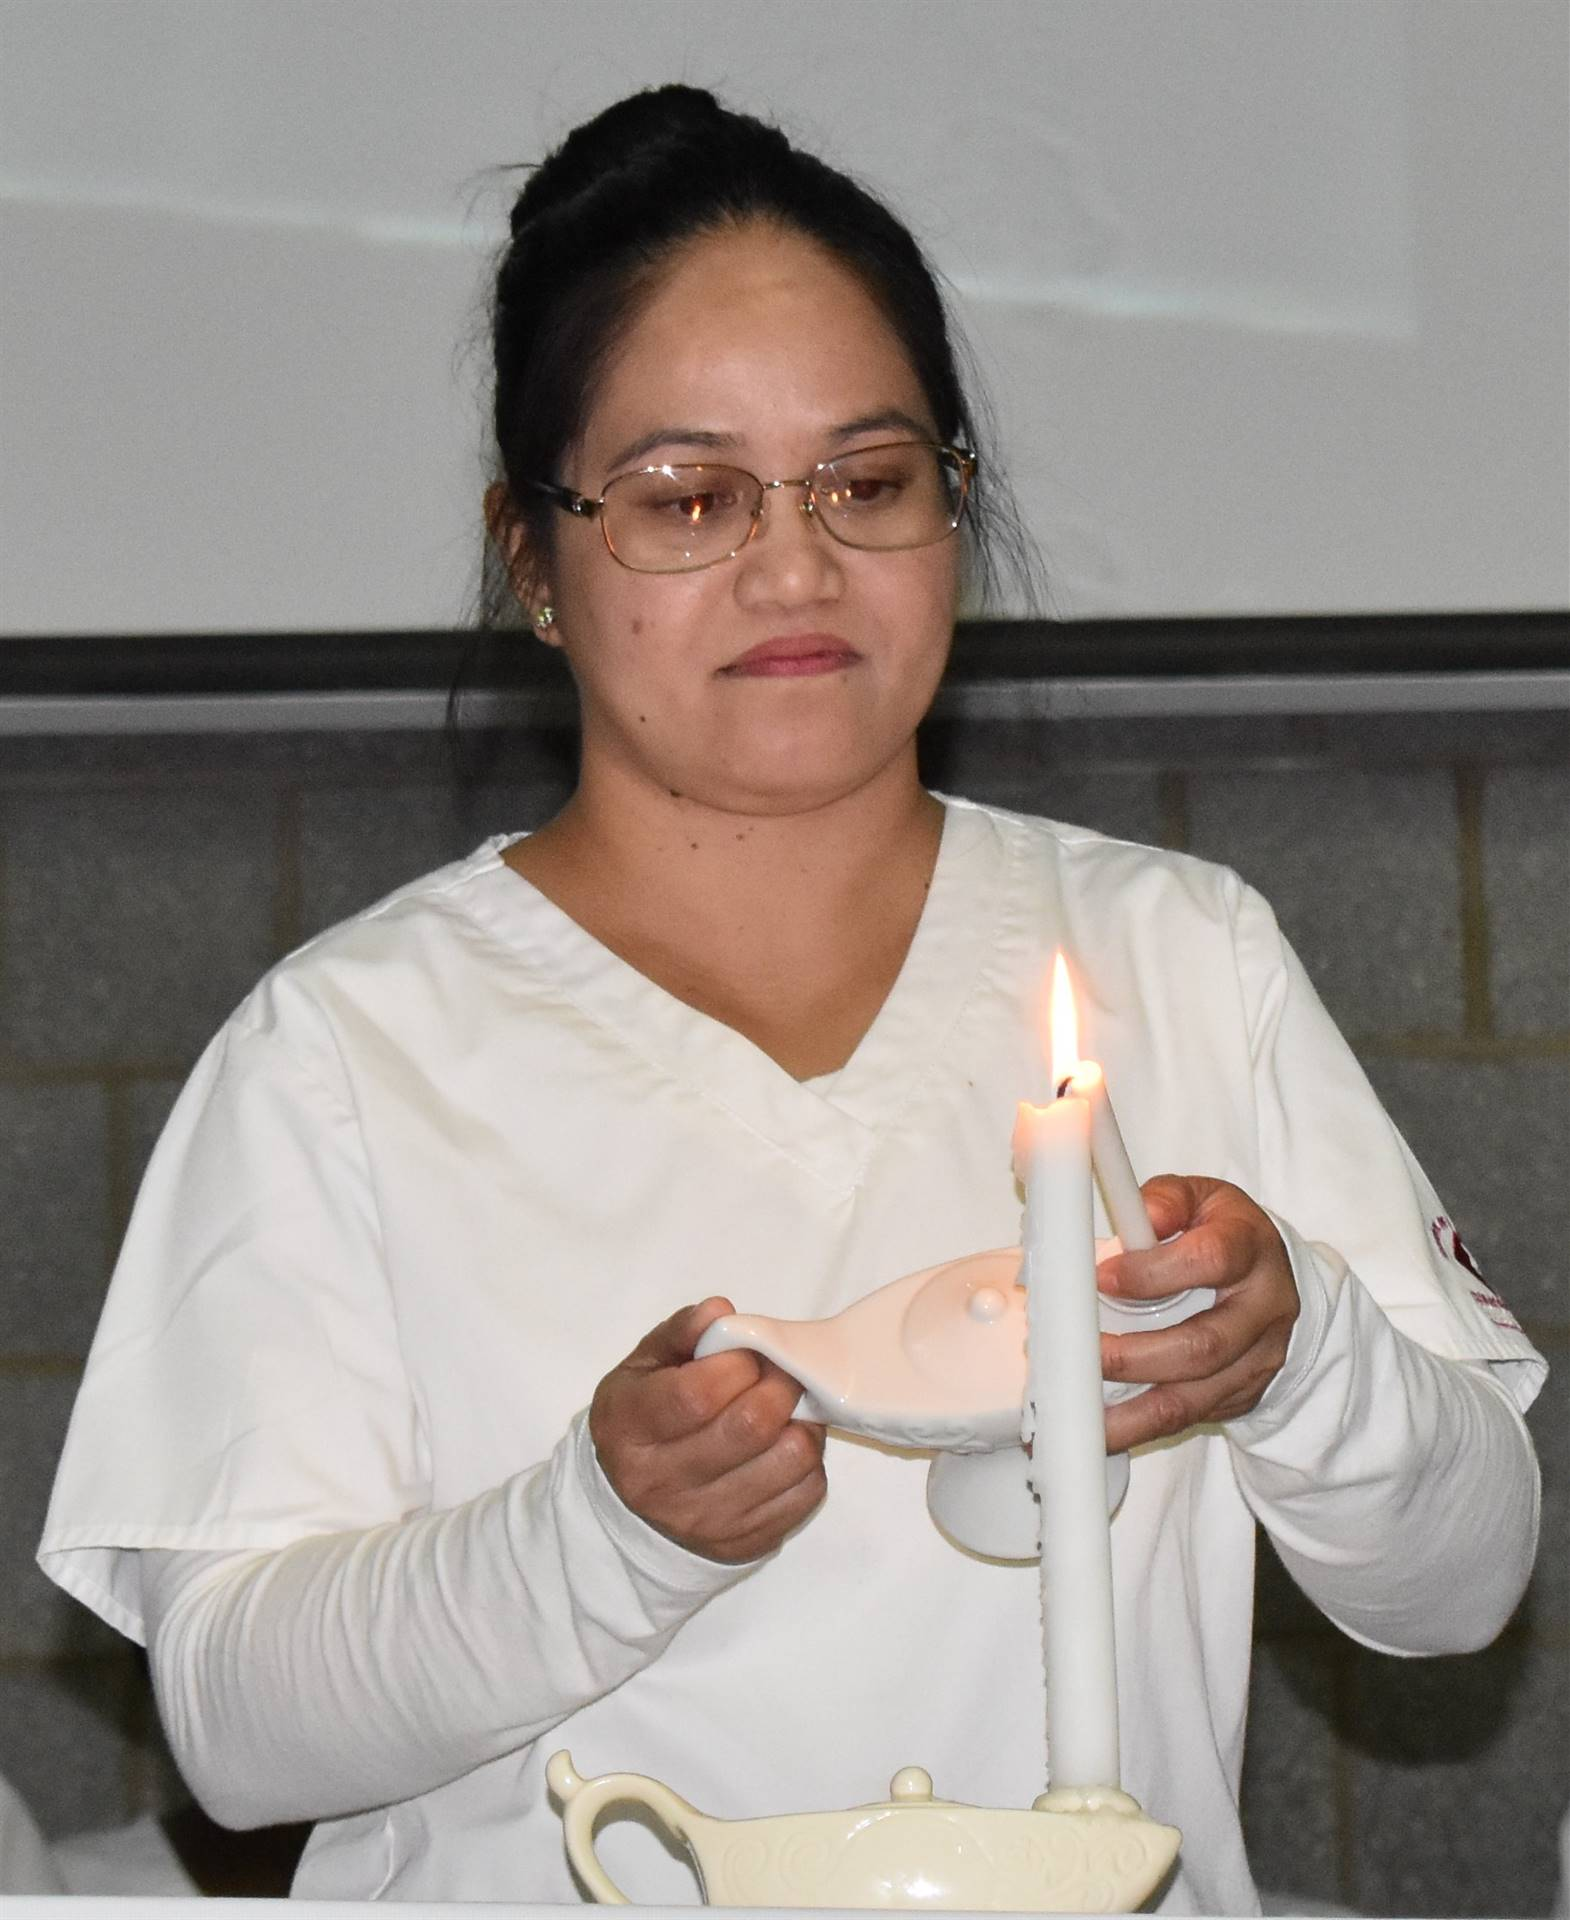 nursing student lighting candle